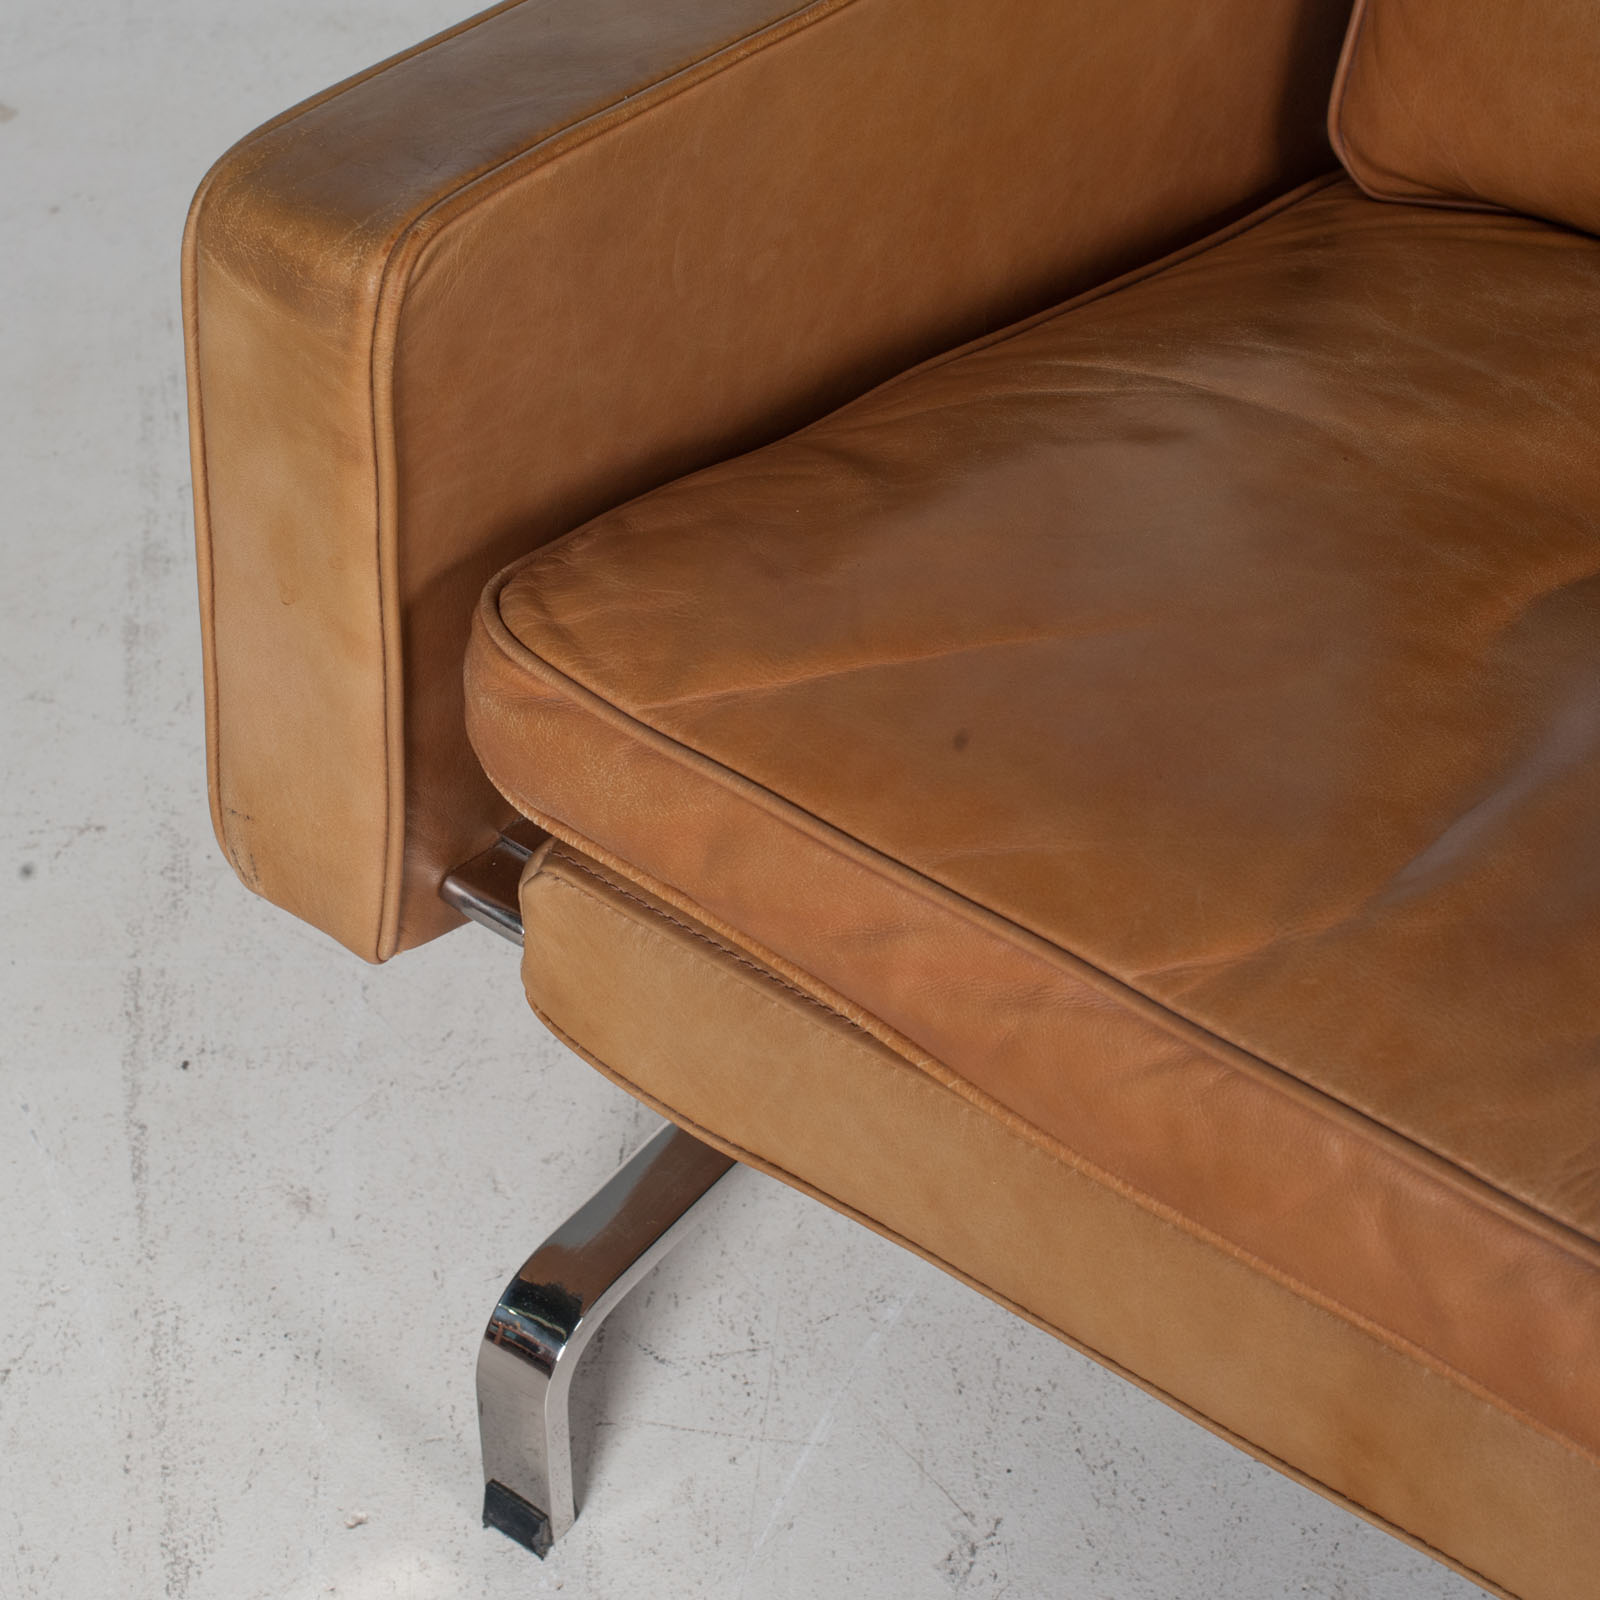 3 Seat Sofa By Poul Kjaerholm For Ejvind Kold Christensen In Tan Leather And Chrome, 1960s, Denmark 8